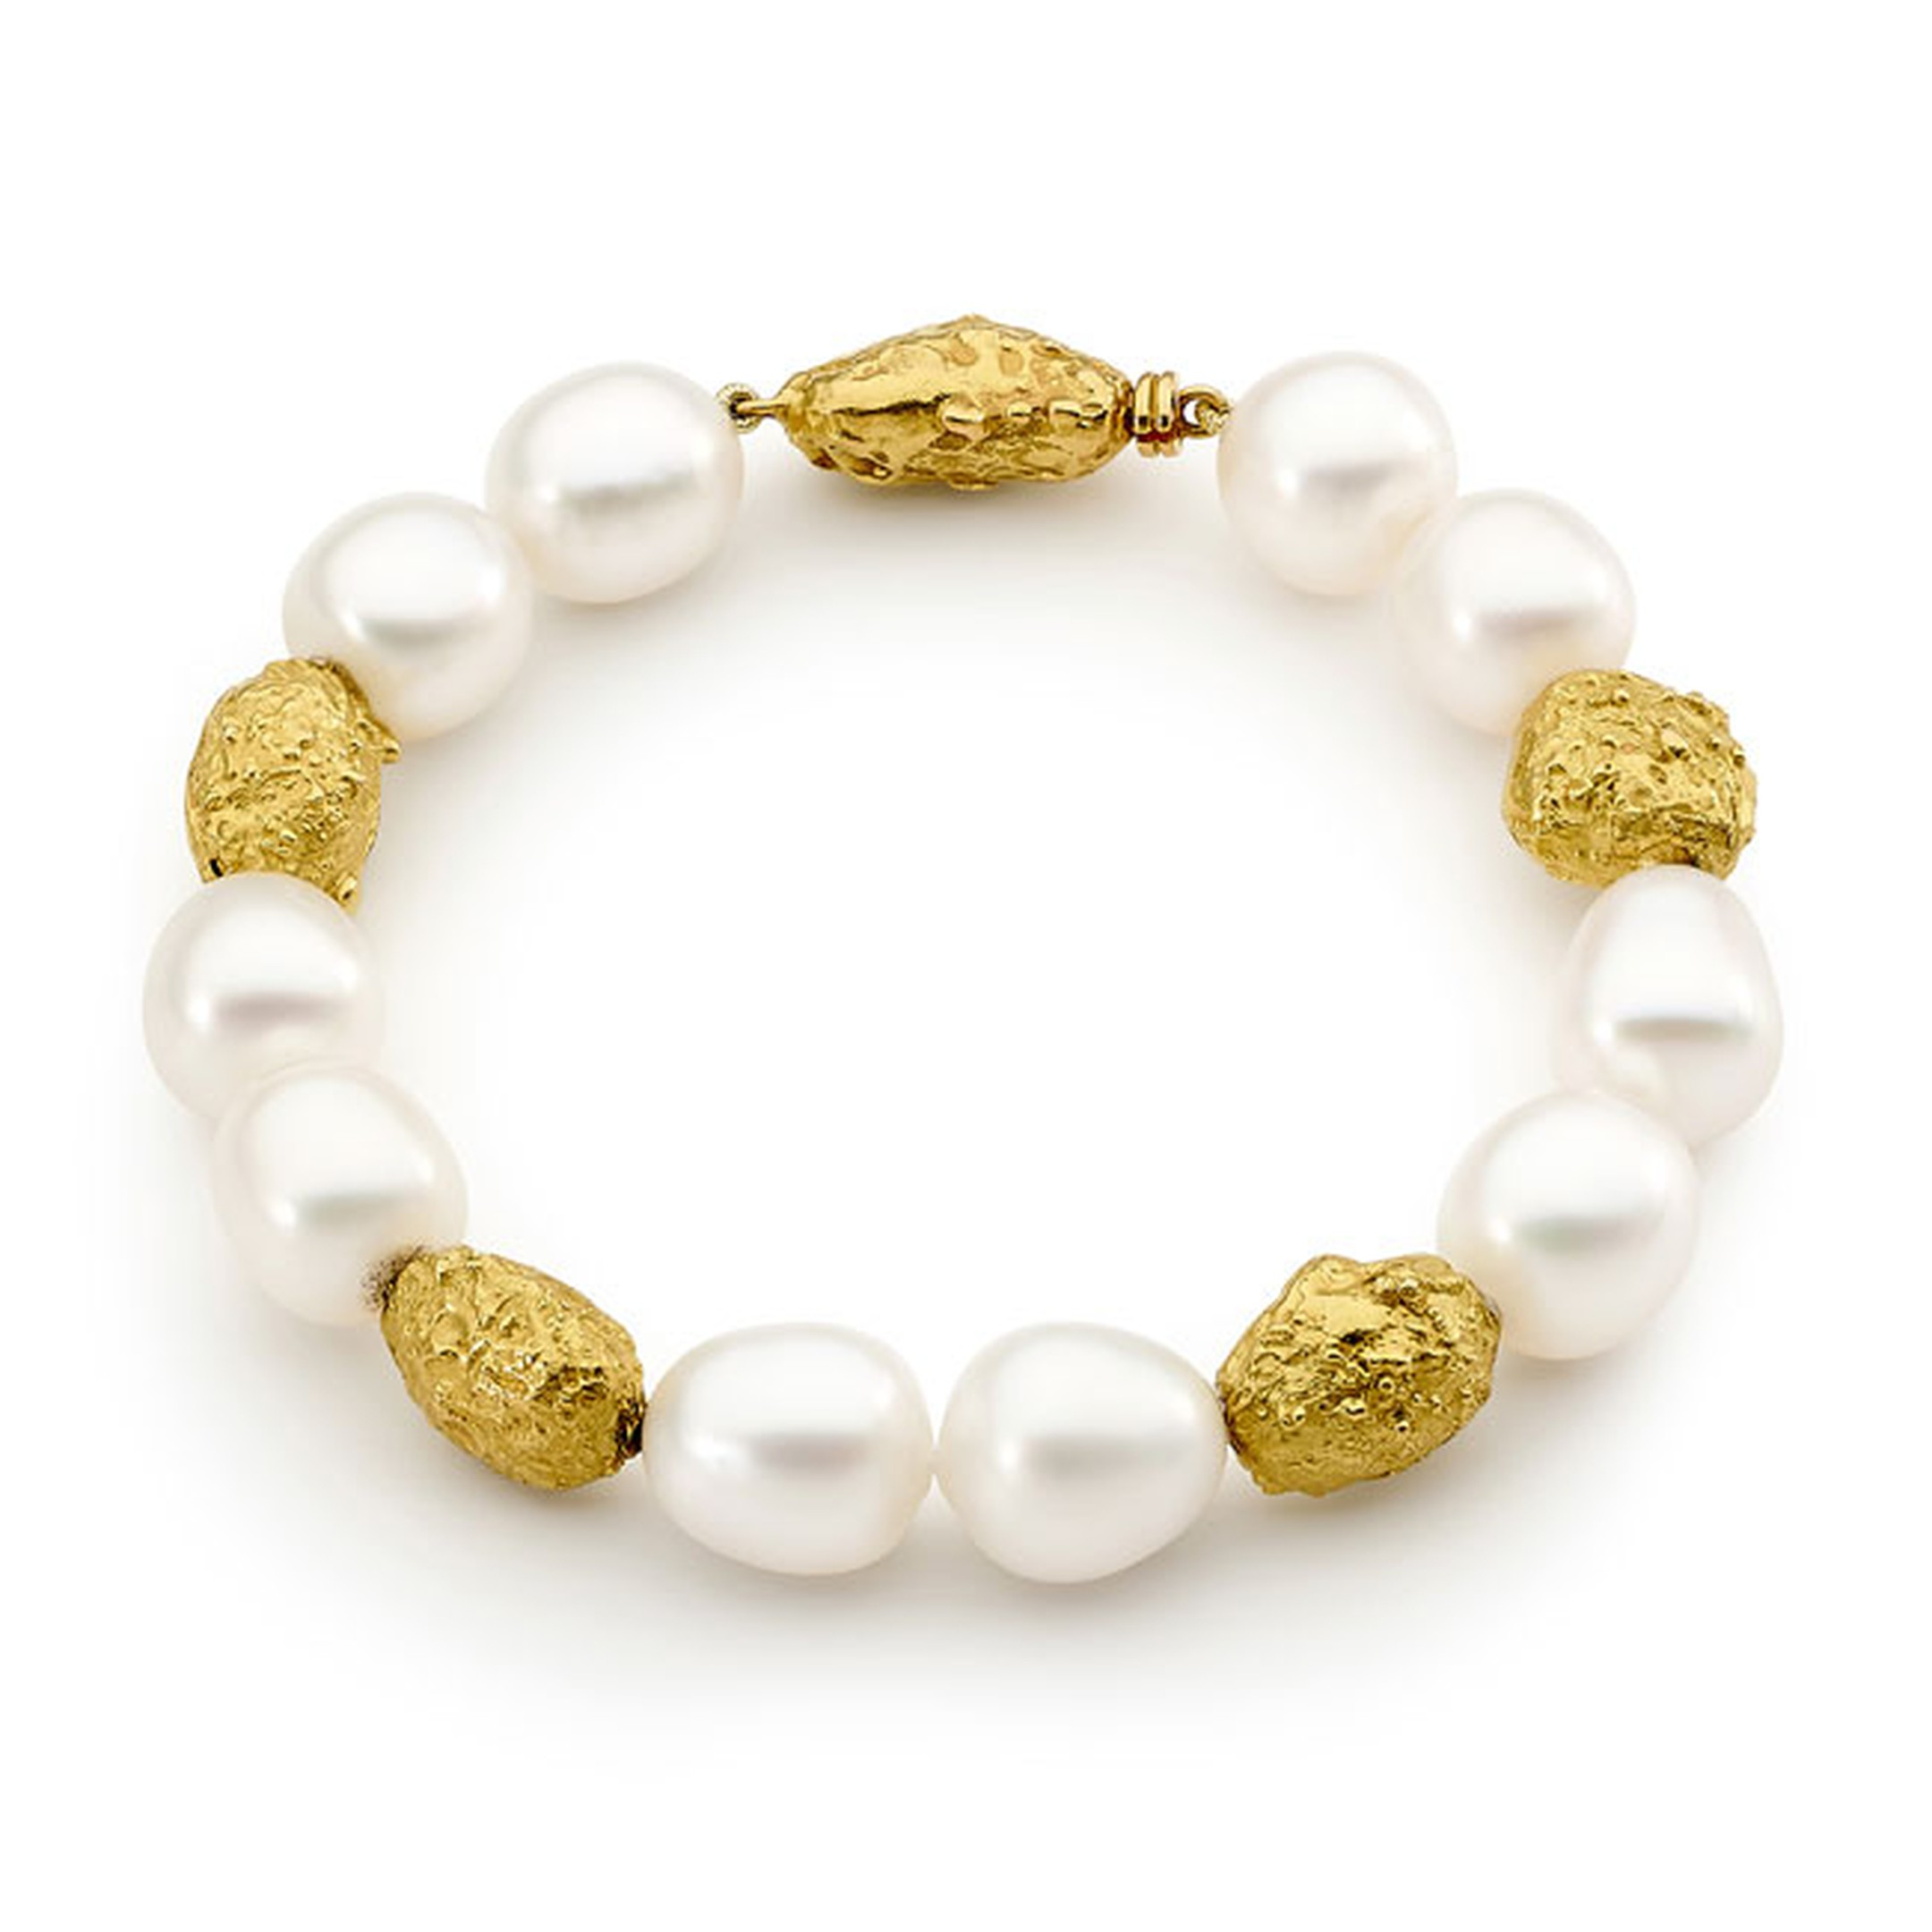 Linneys 18ct yellow gold Australian south sea pearl bracelet_main